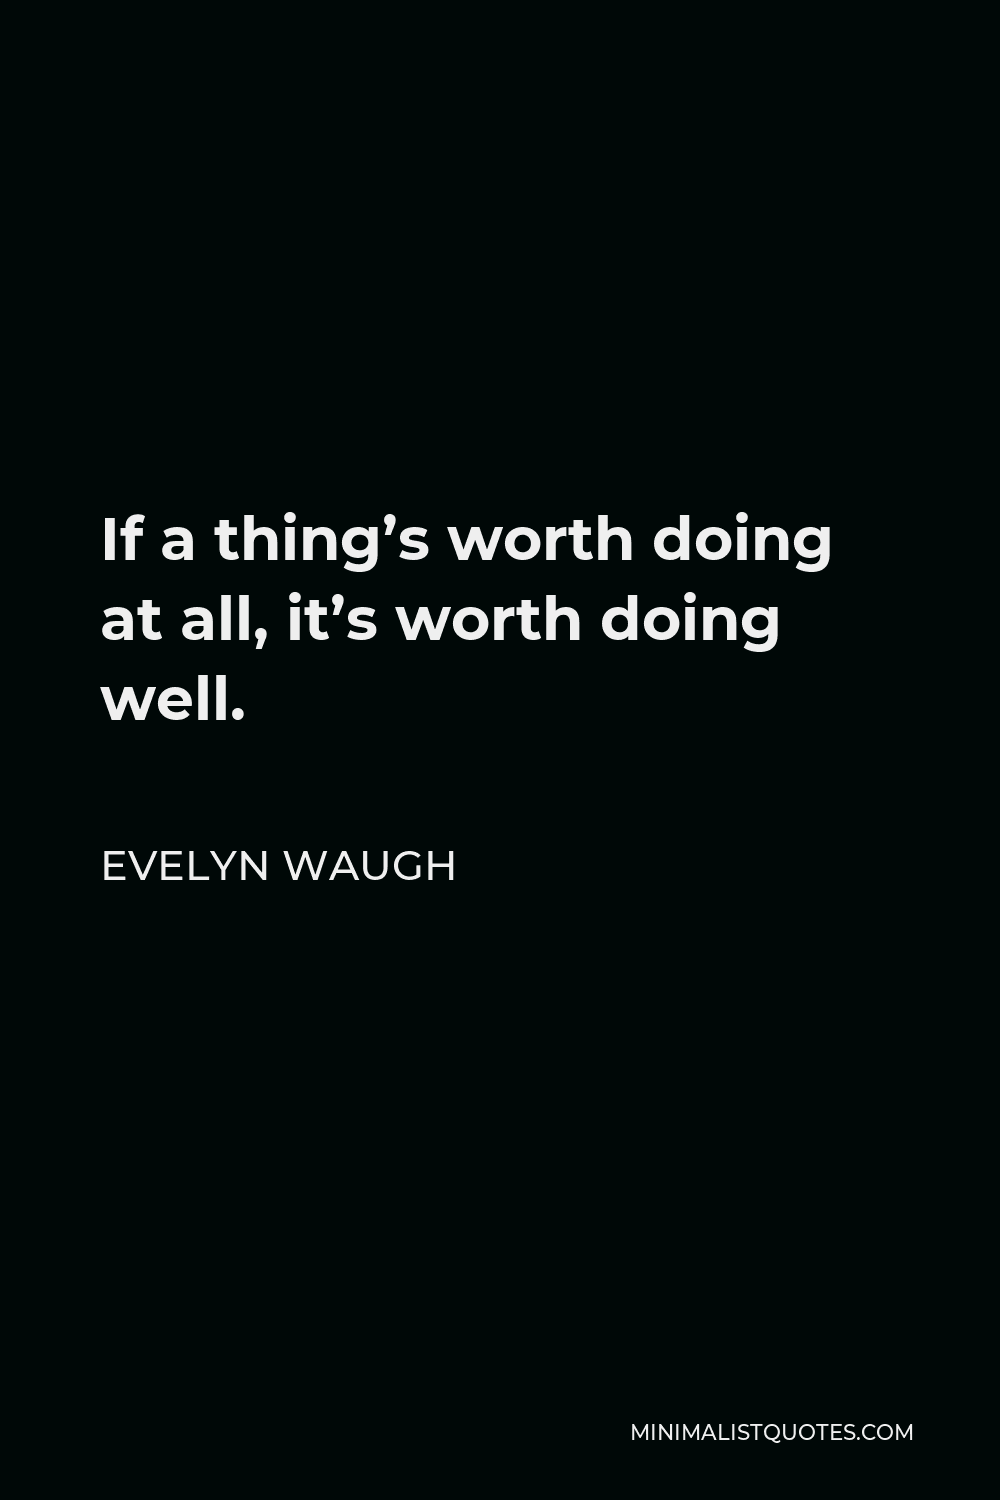 Evelyn Waugh Quote - If a thing's worth doing at all, it's worth doing well.